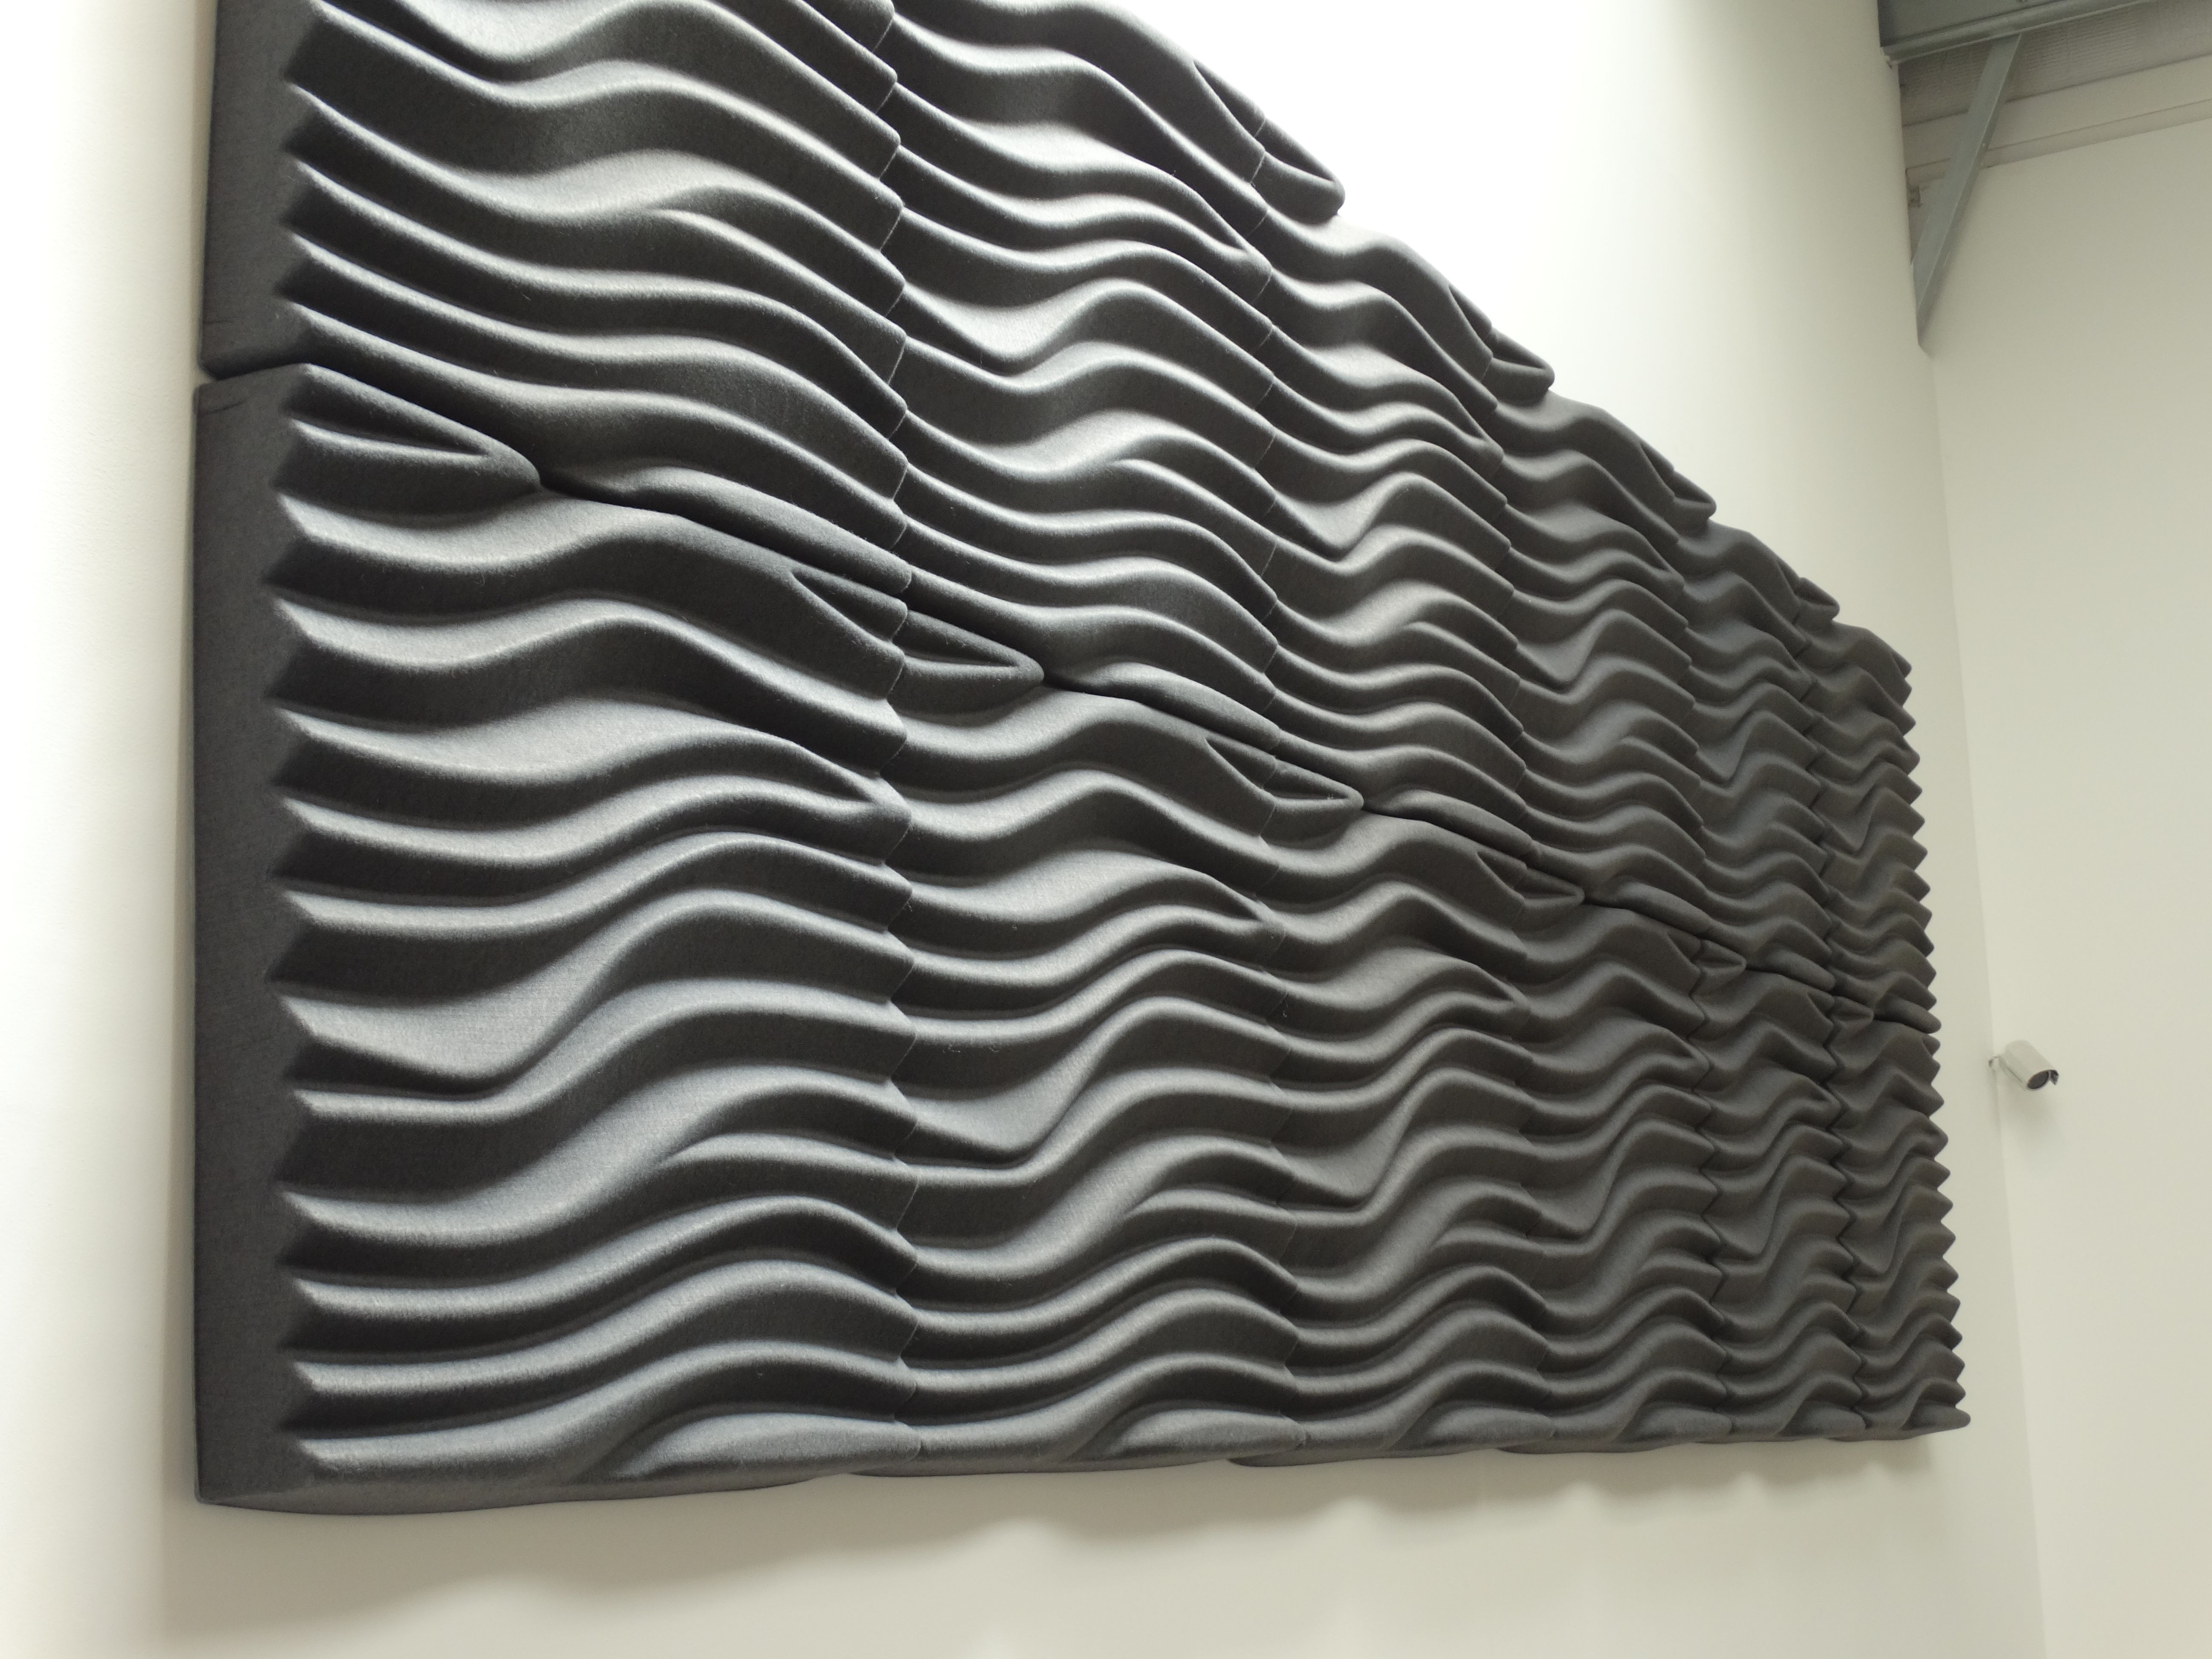 Soundtect Wave Acoustic Wall Panel - Amazing performance even better aesthetics